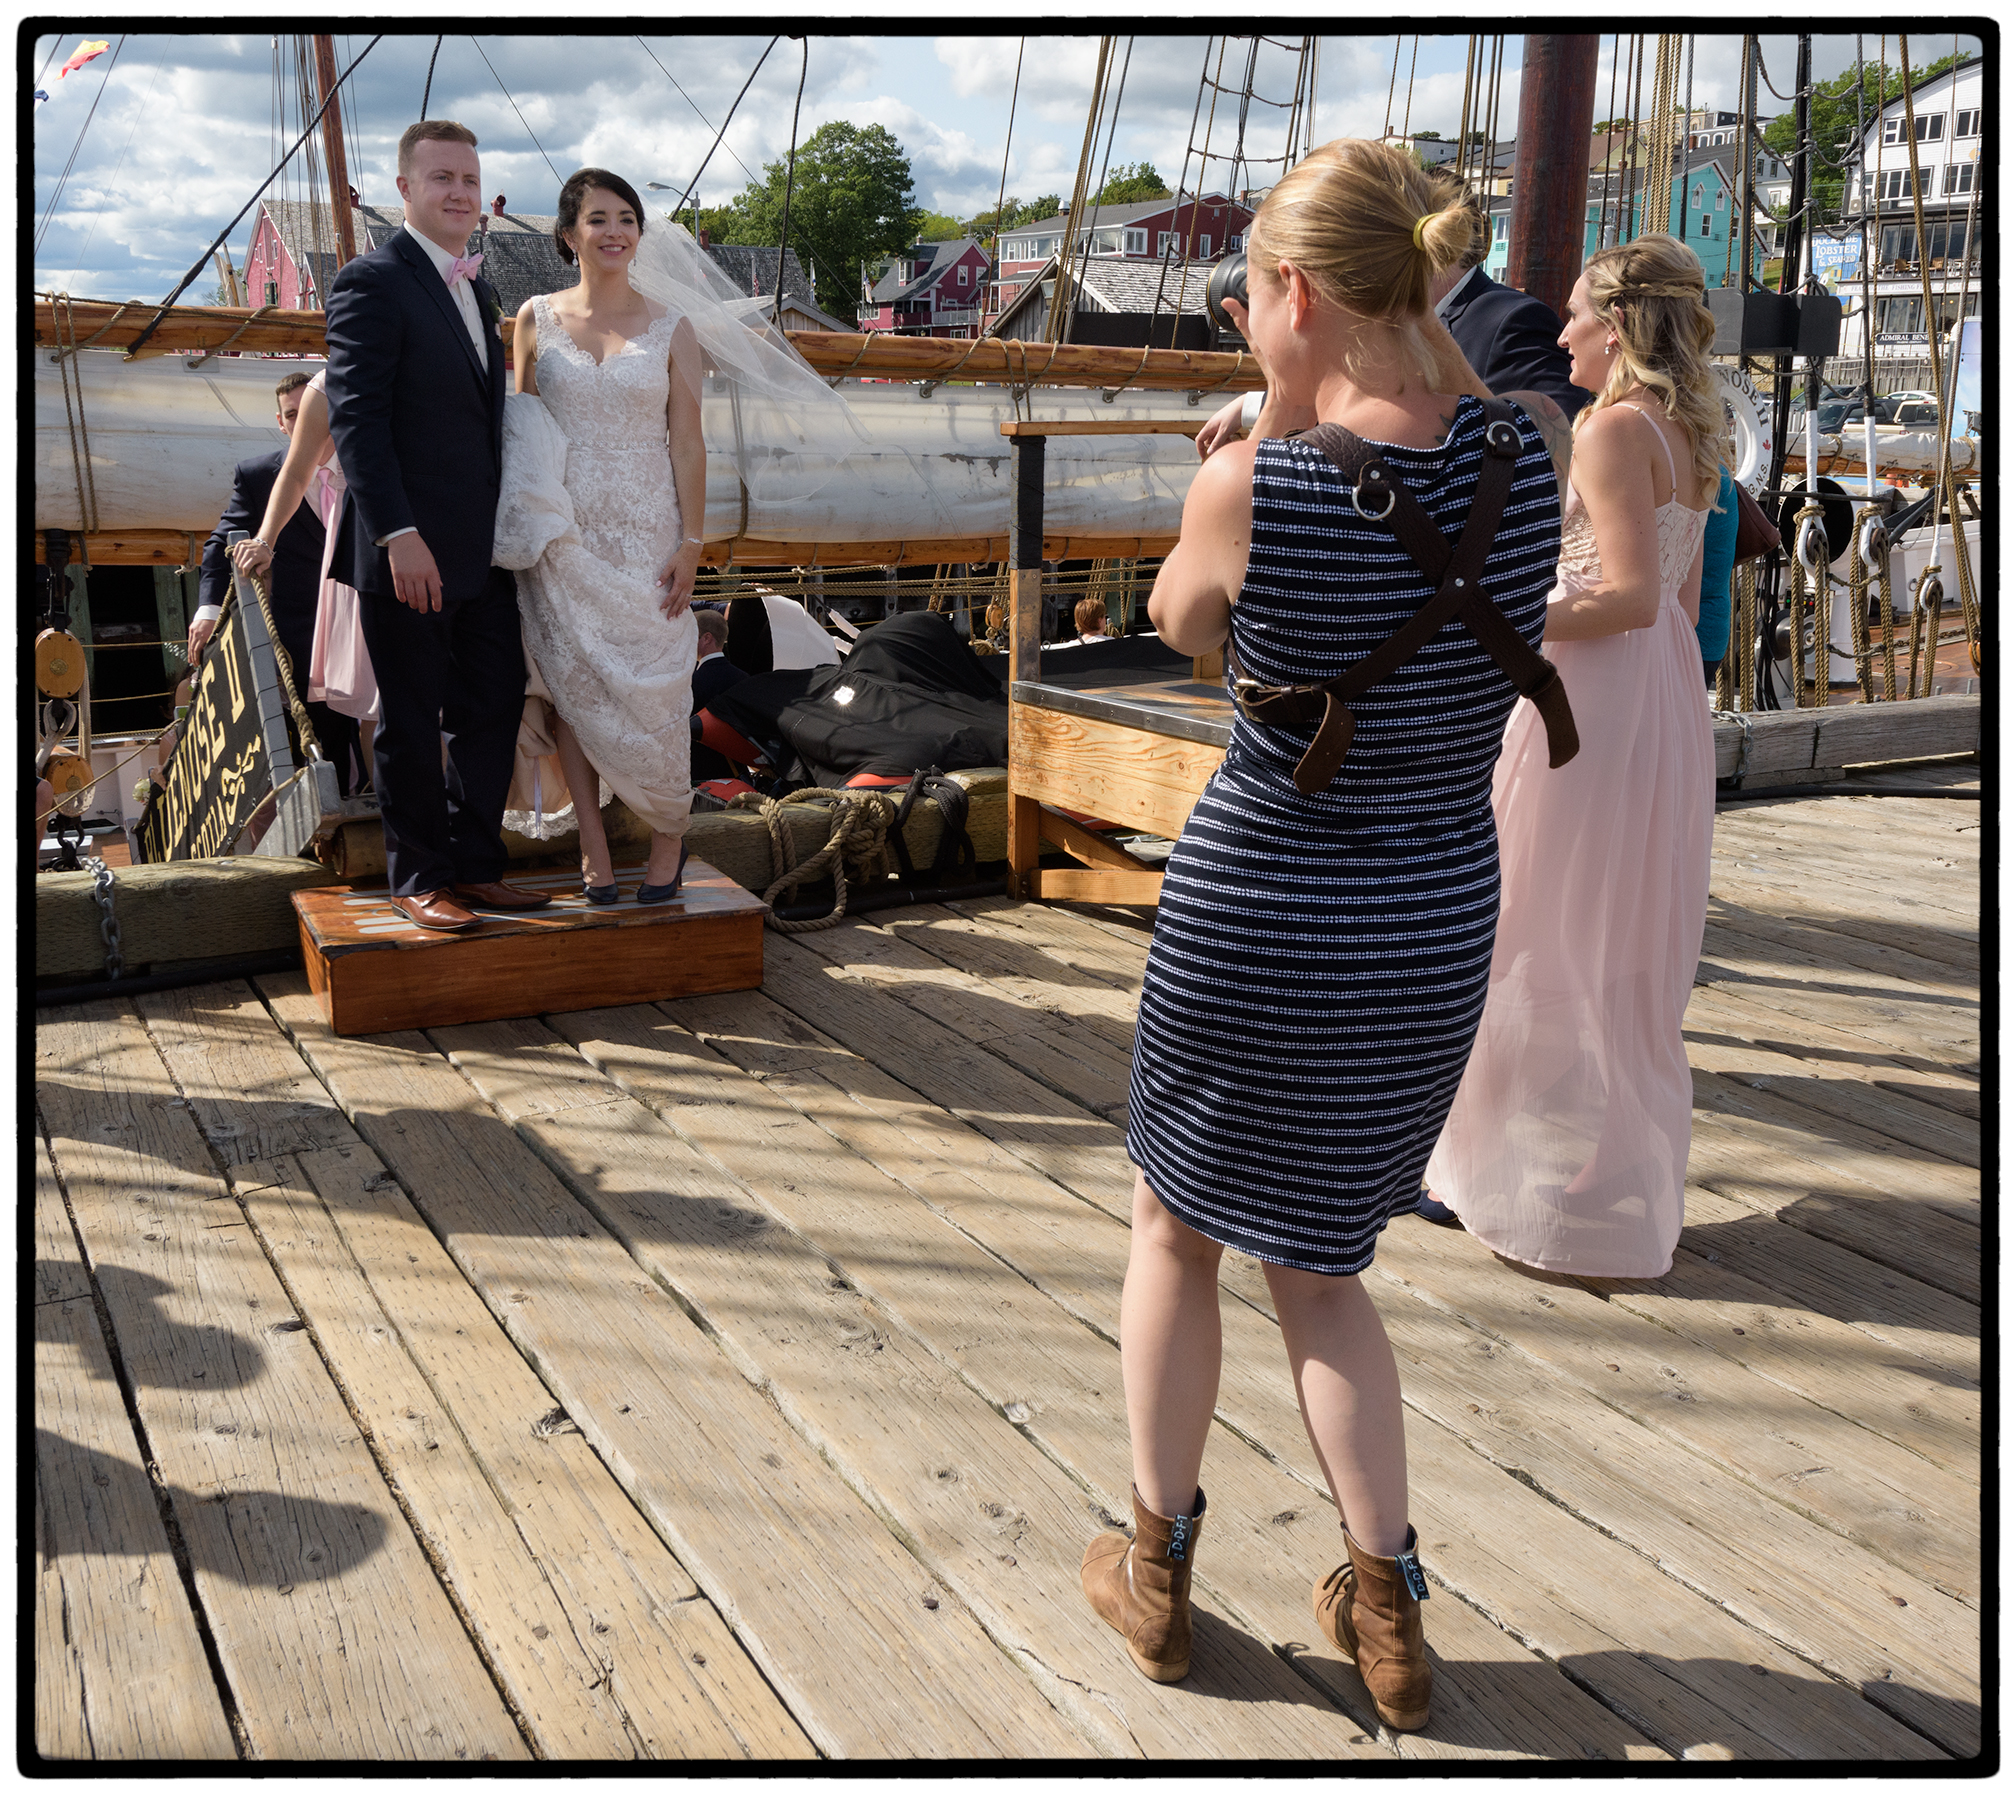 Wedding aboard the Bluenose.